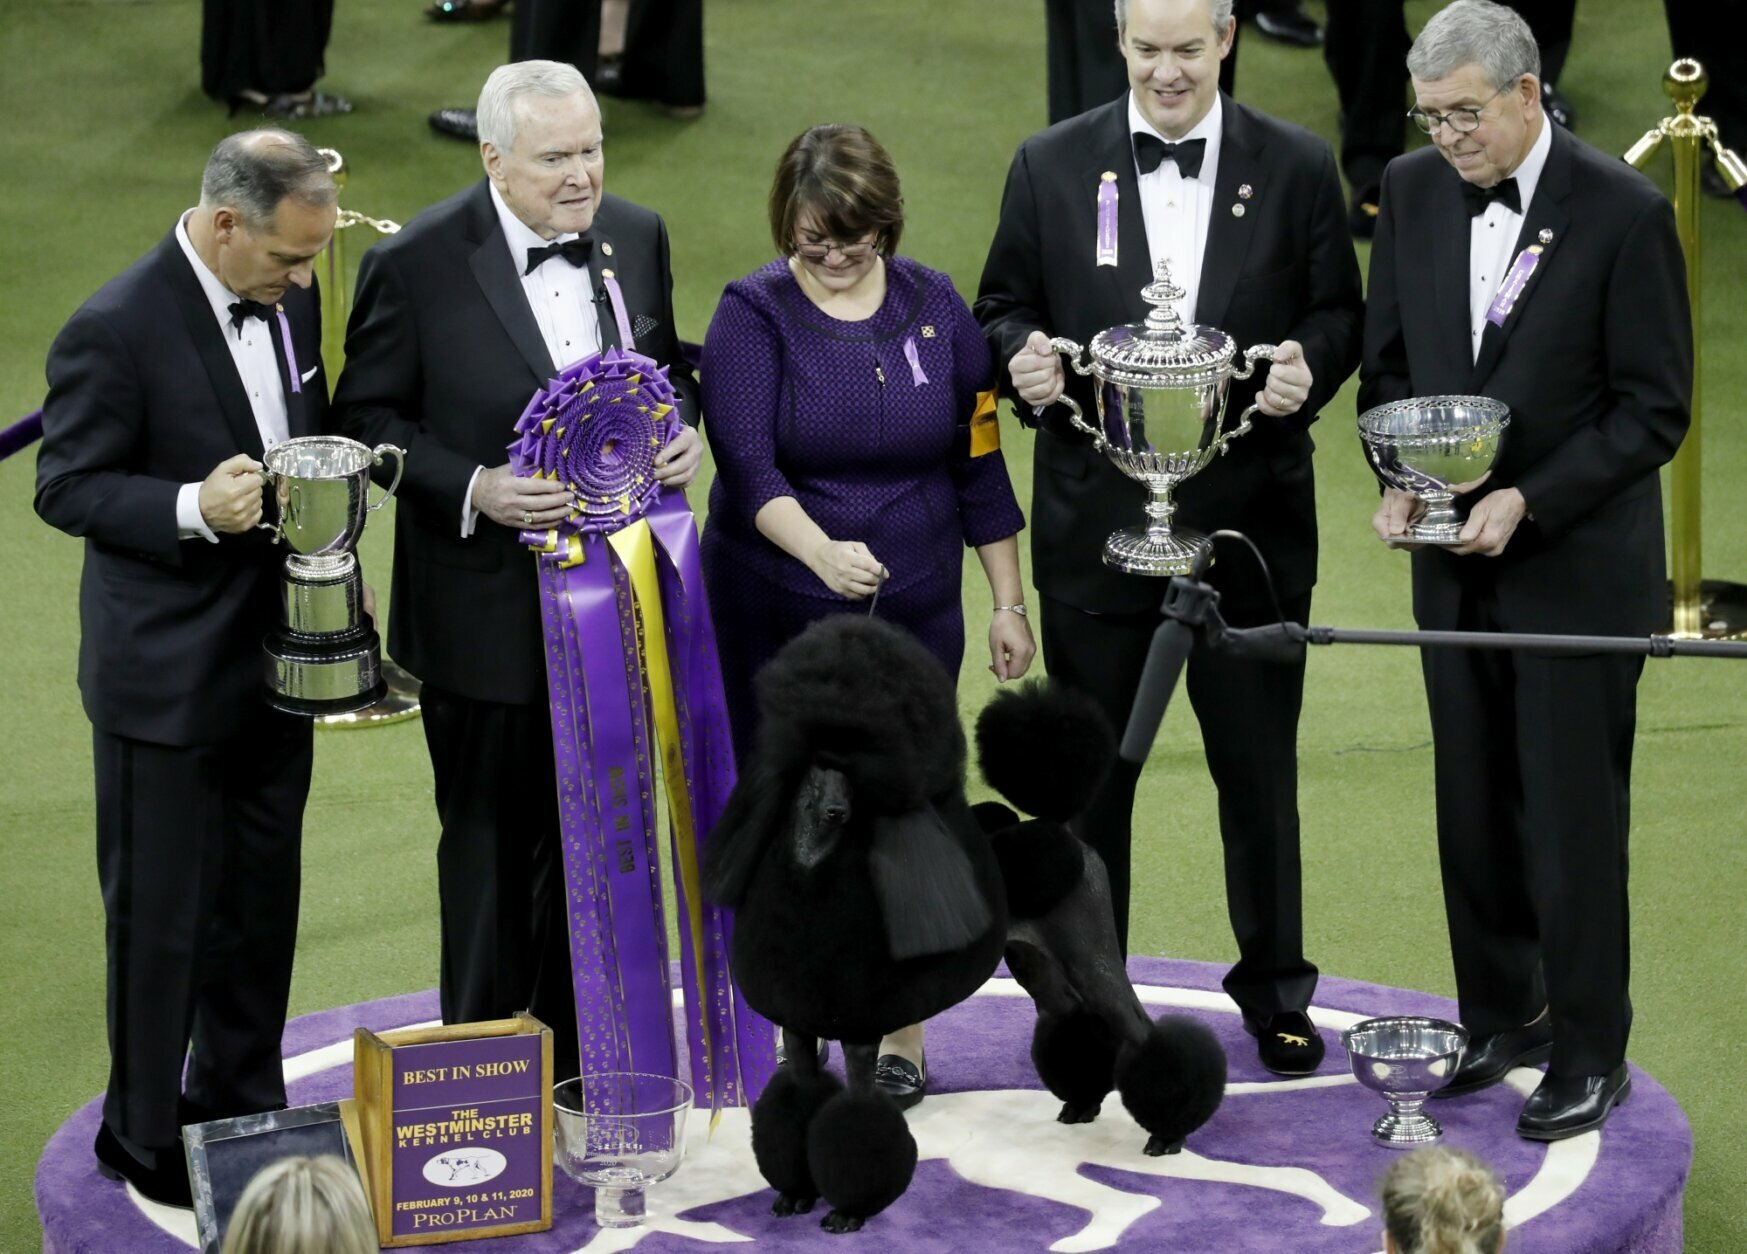 2020 westminster dog show winners